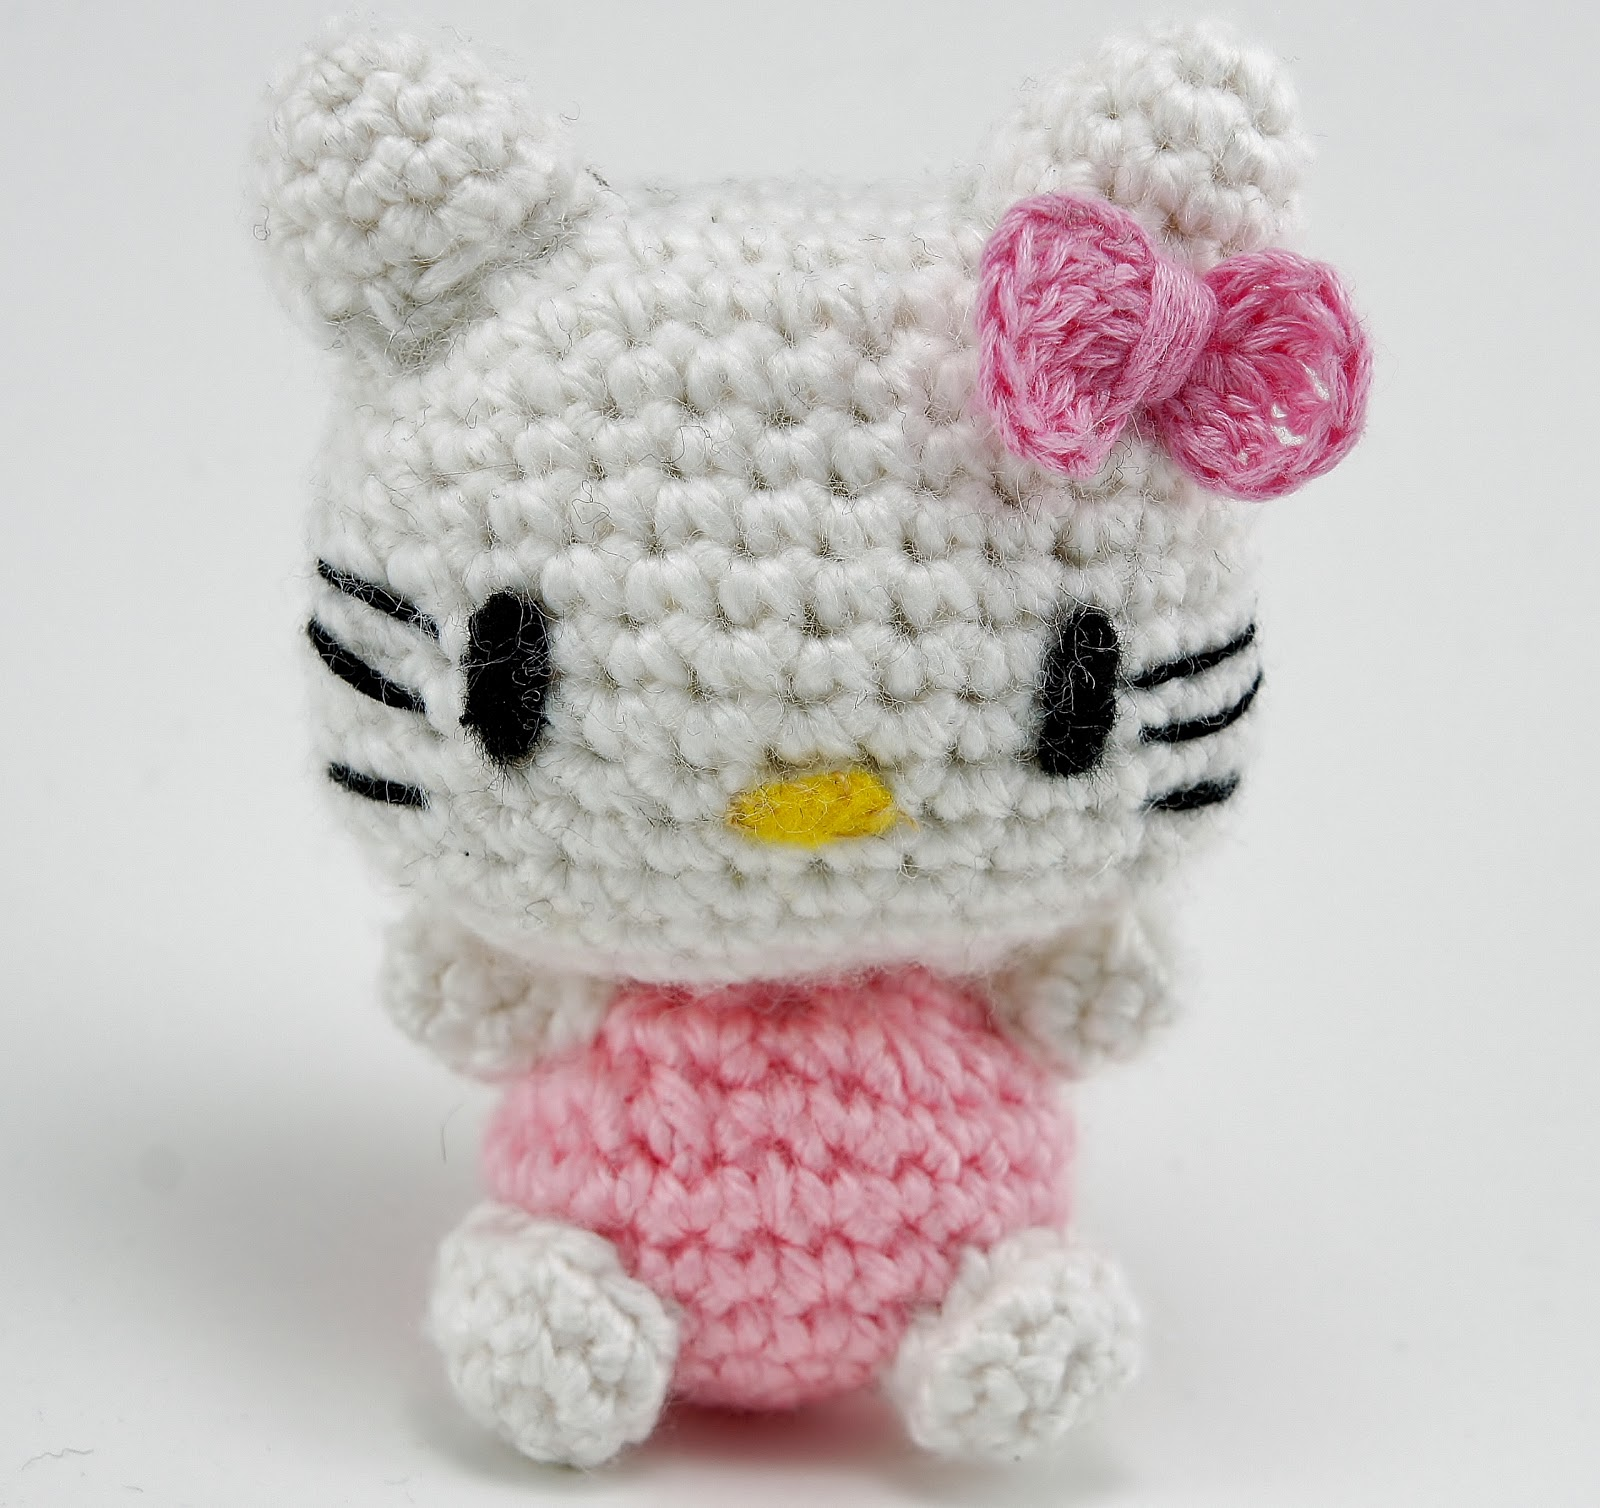 Mini Hello Kitty Amigurumi Patron : Hello Kitty amigurumi for a friend Handmade Kawaii